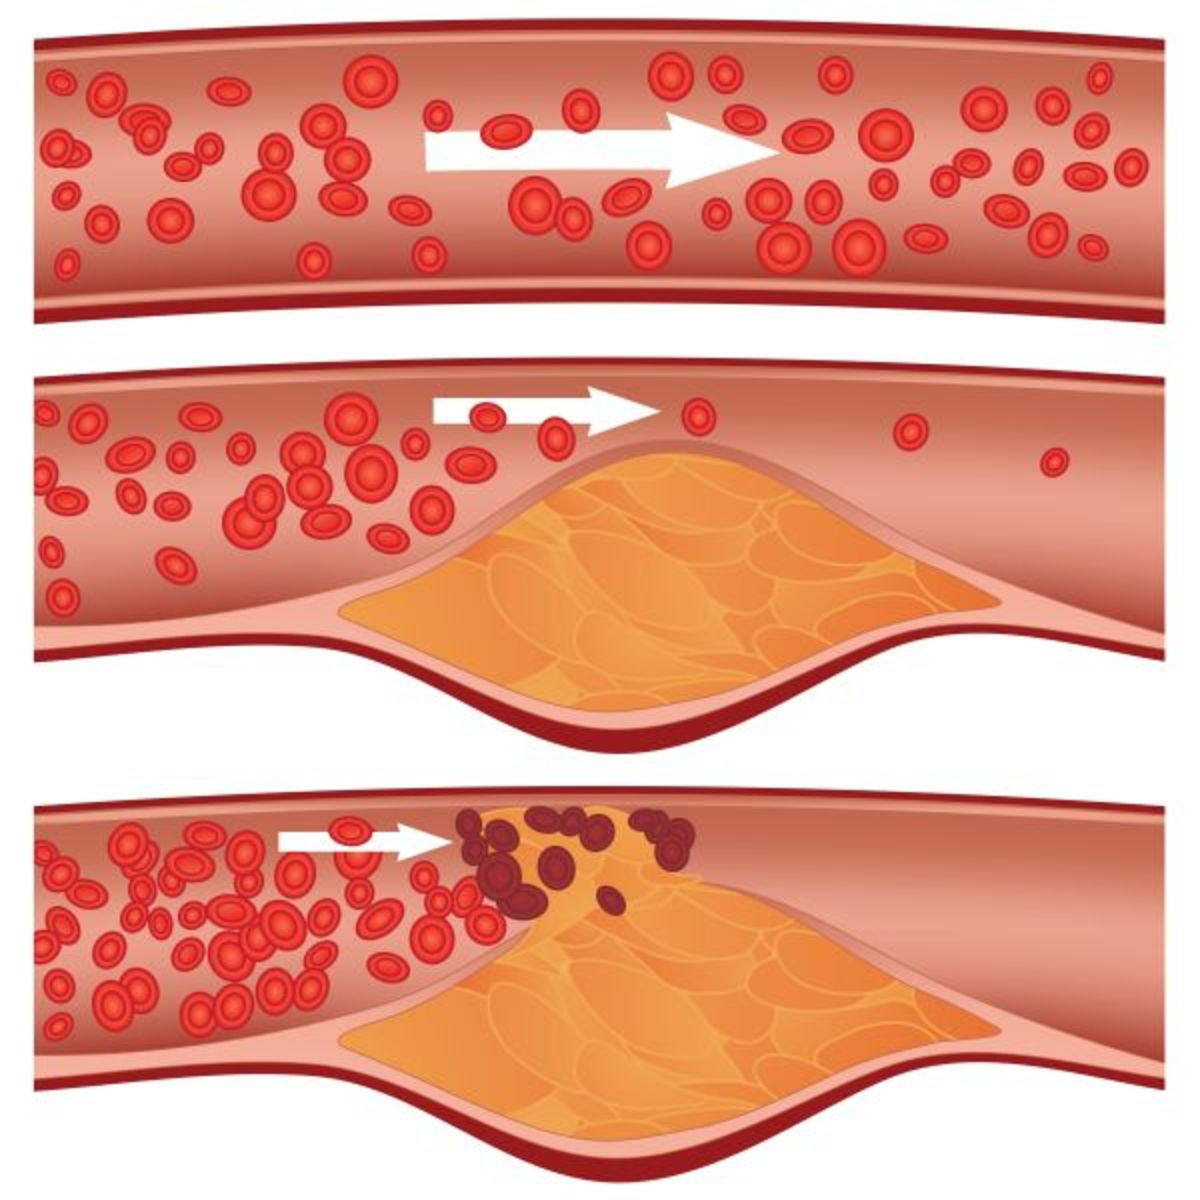 Diagram showing the formation of atherosclerosis